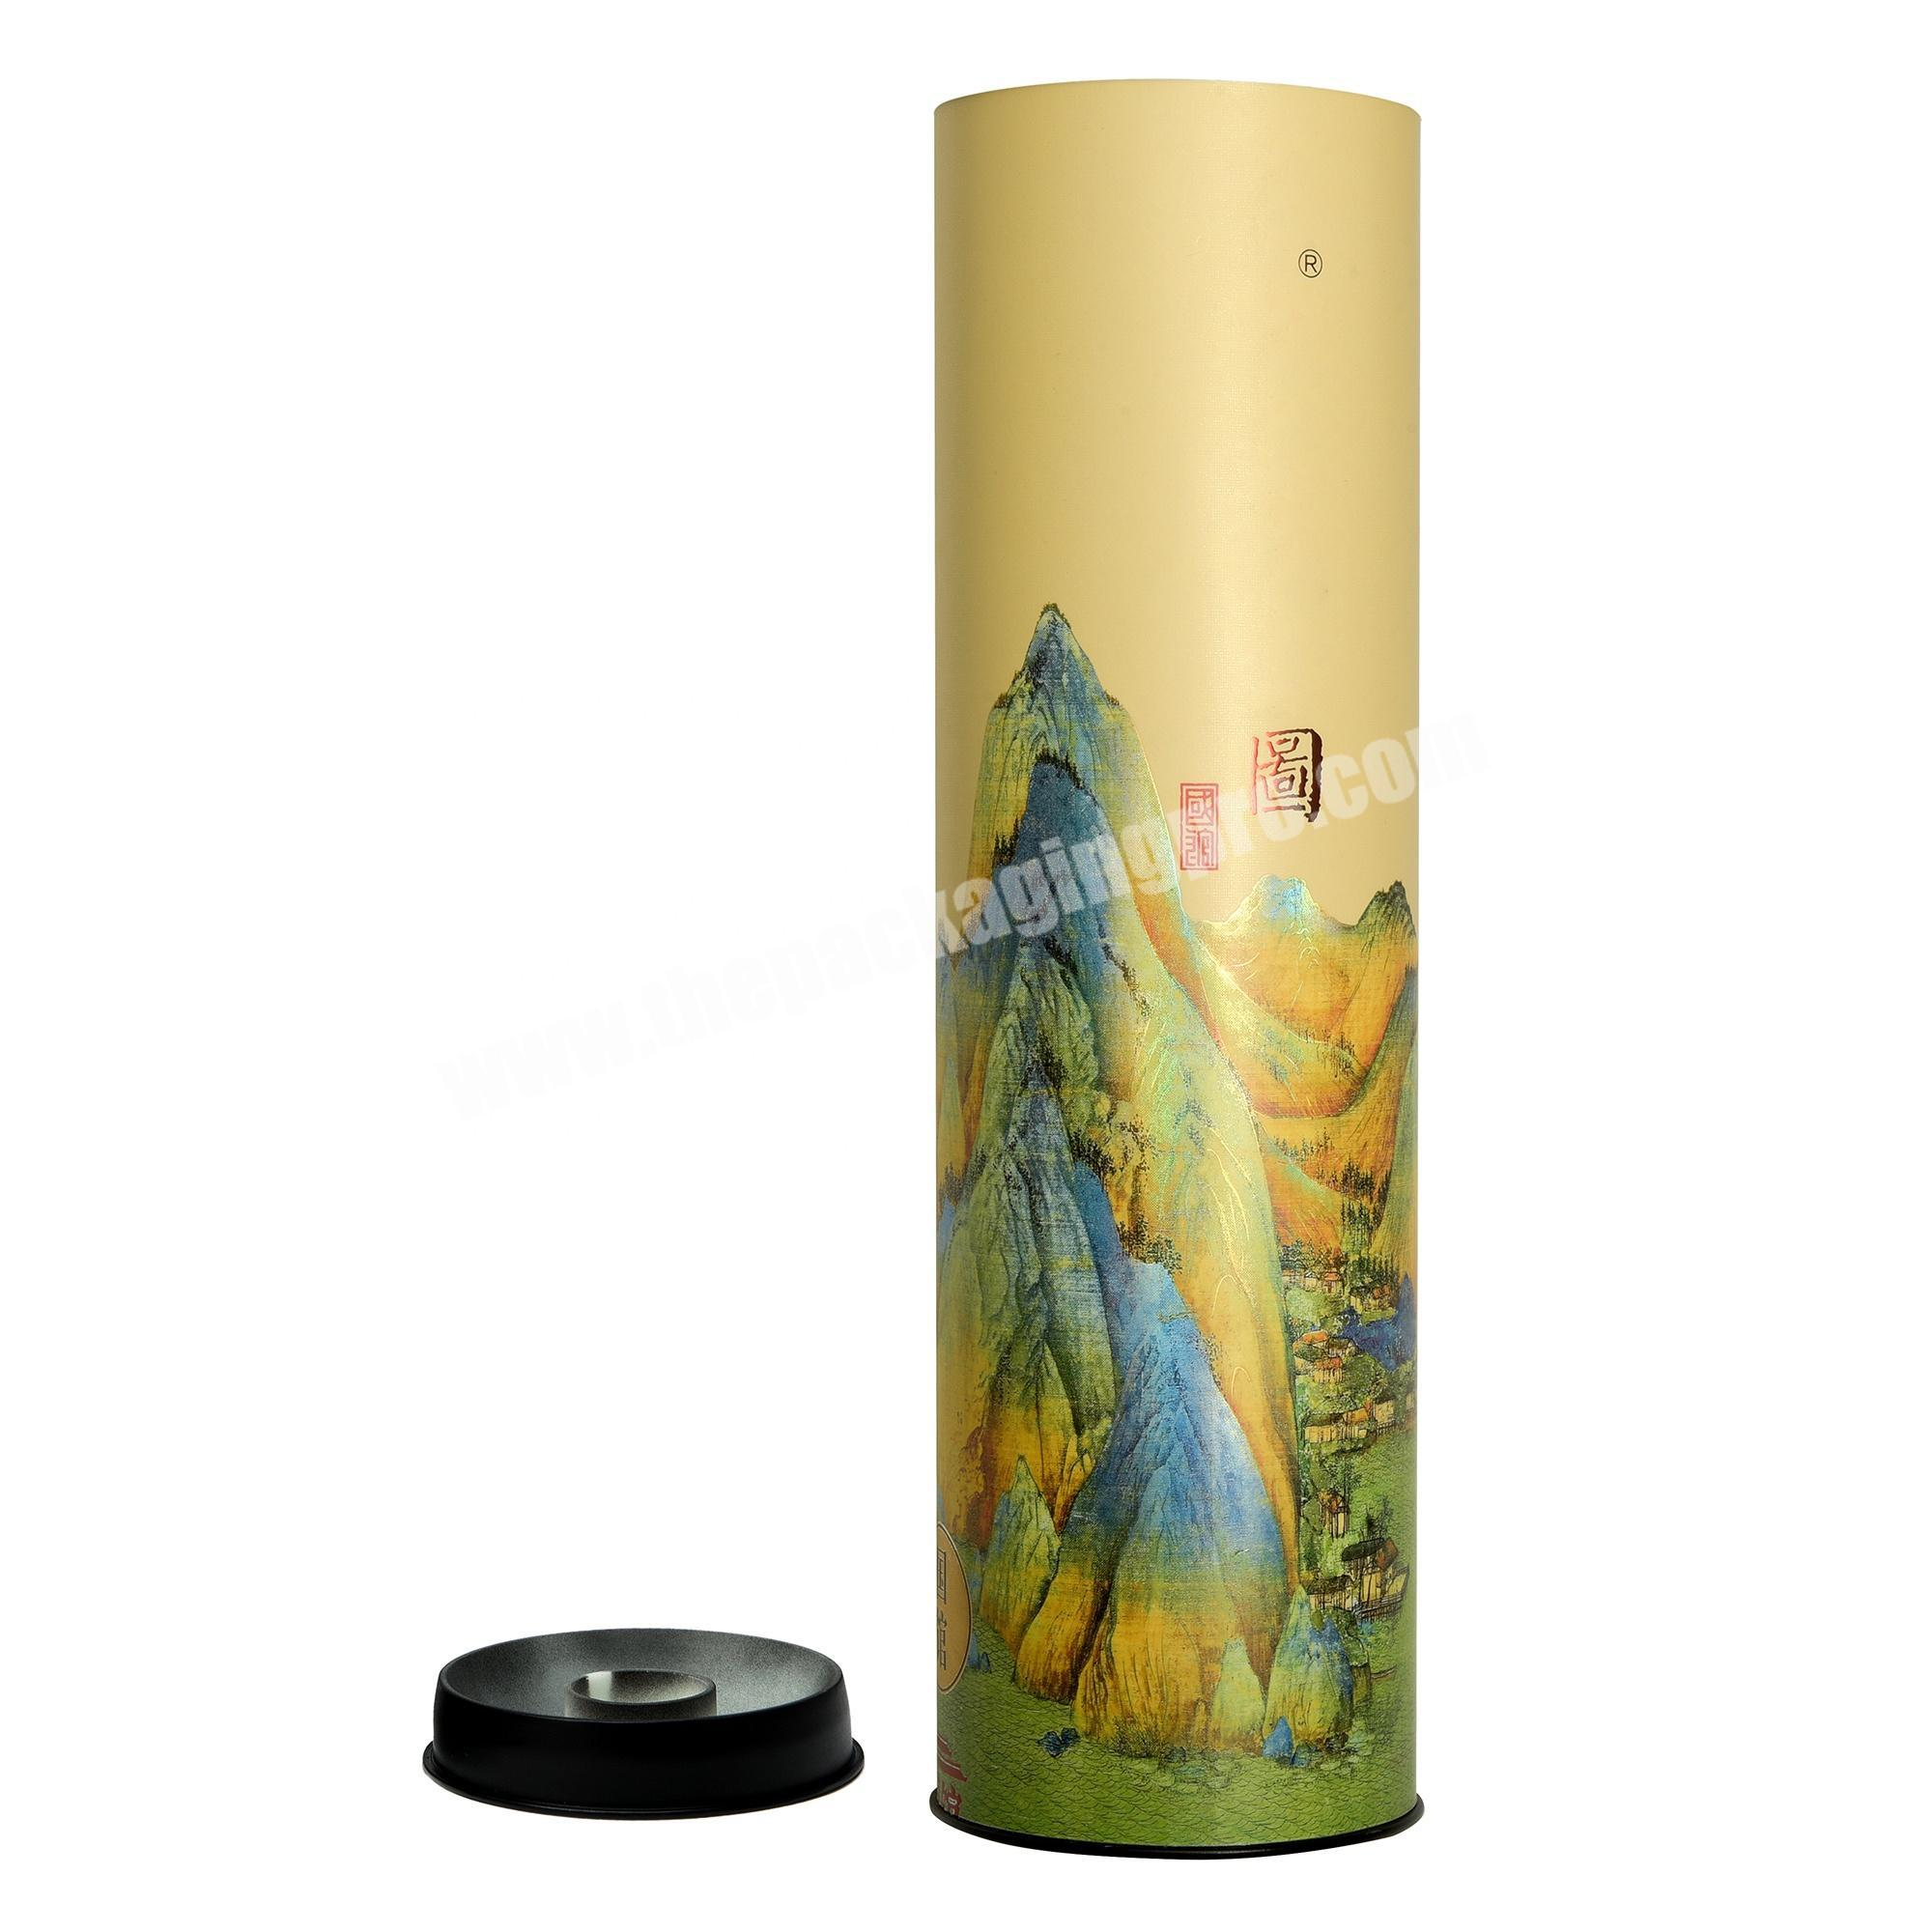 Customized Oval Round Cylinder Tube Paper Box with Tin Cap for Wine Tea Sticks Gifts